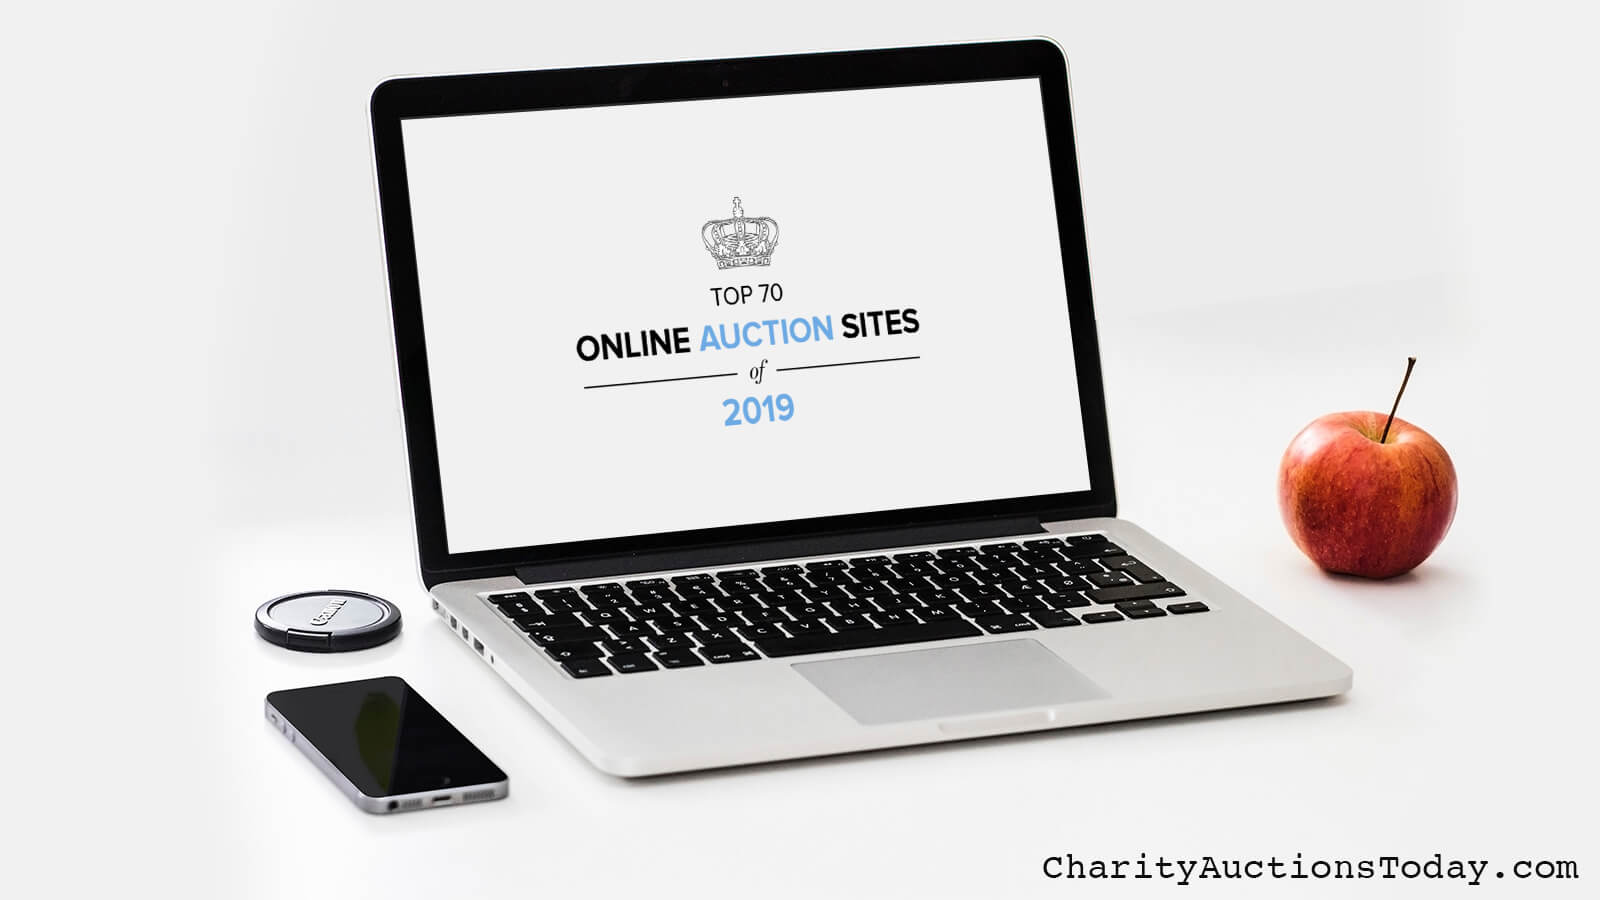 Top Charity Auction Sites